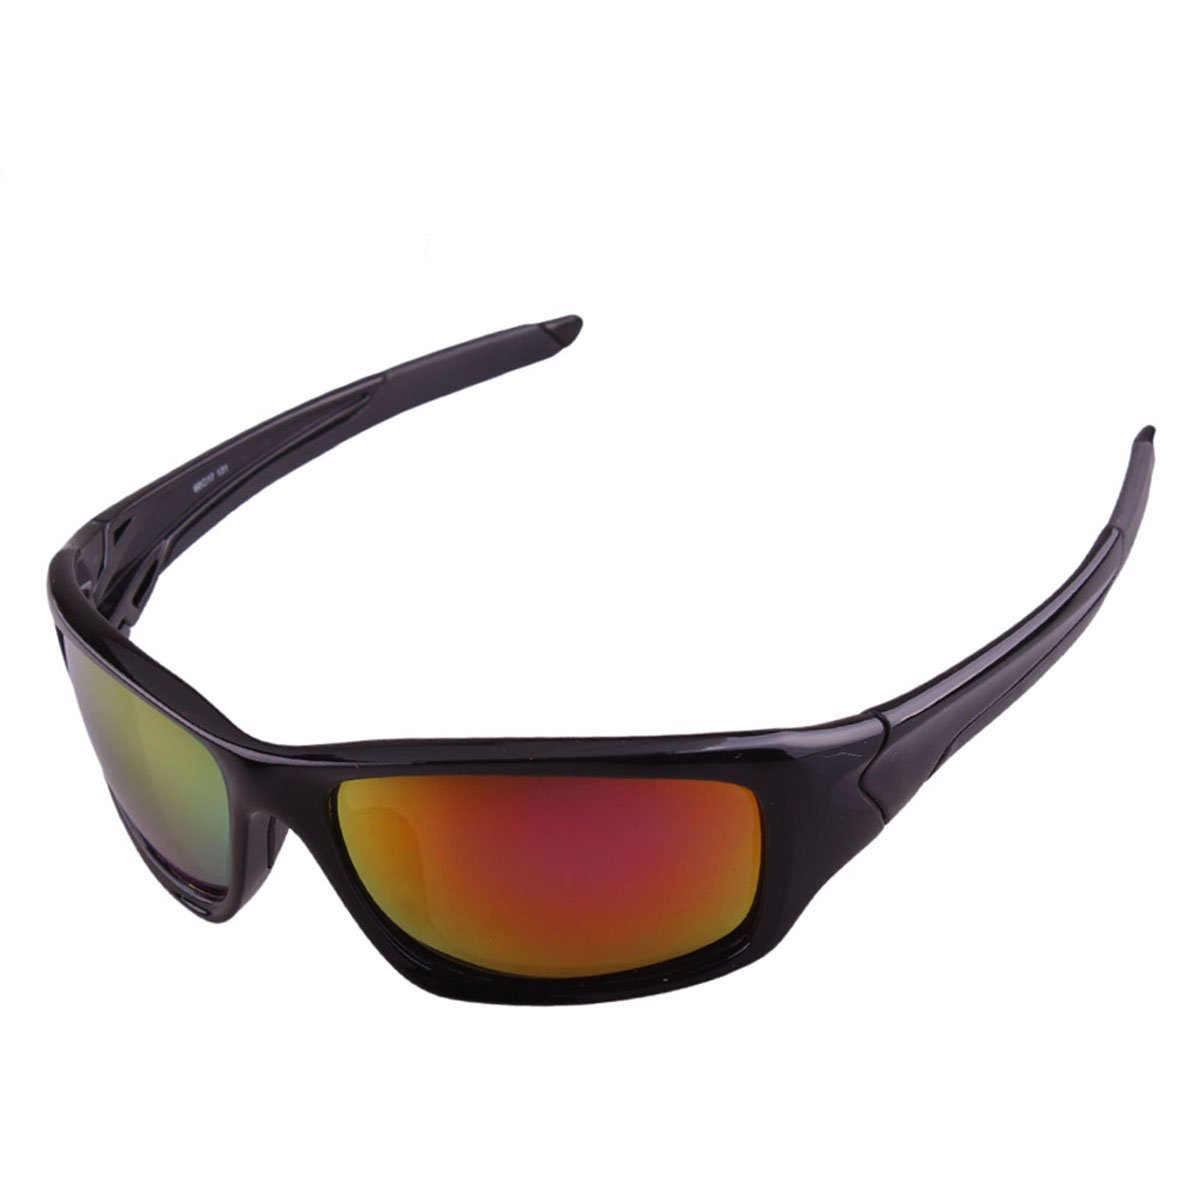 6e89cc3926 Beateff Polarized Sports Sunglasses for Men Women Running Cycling Fishing  Golf